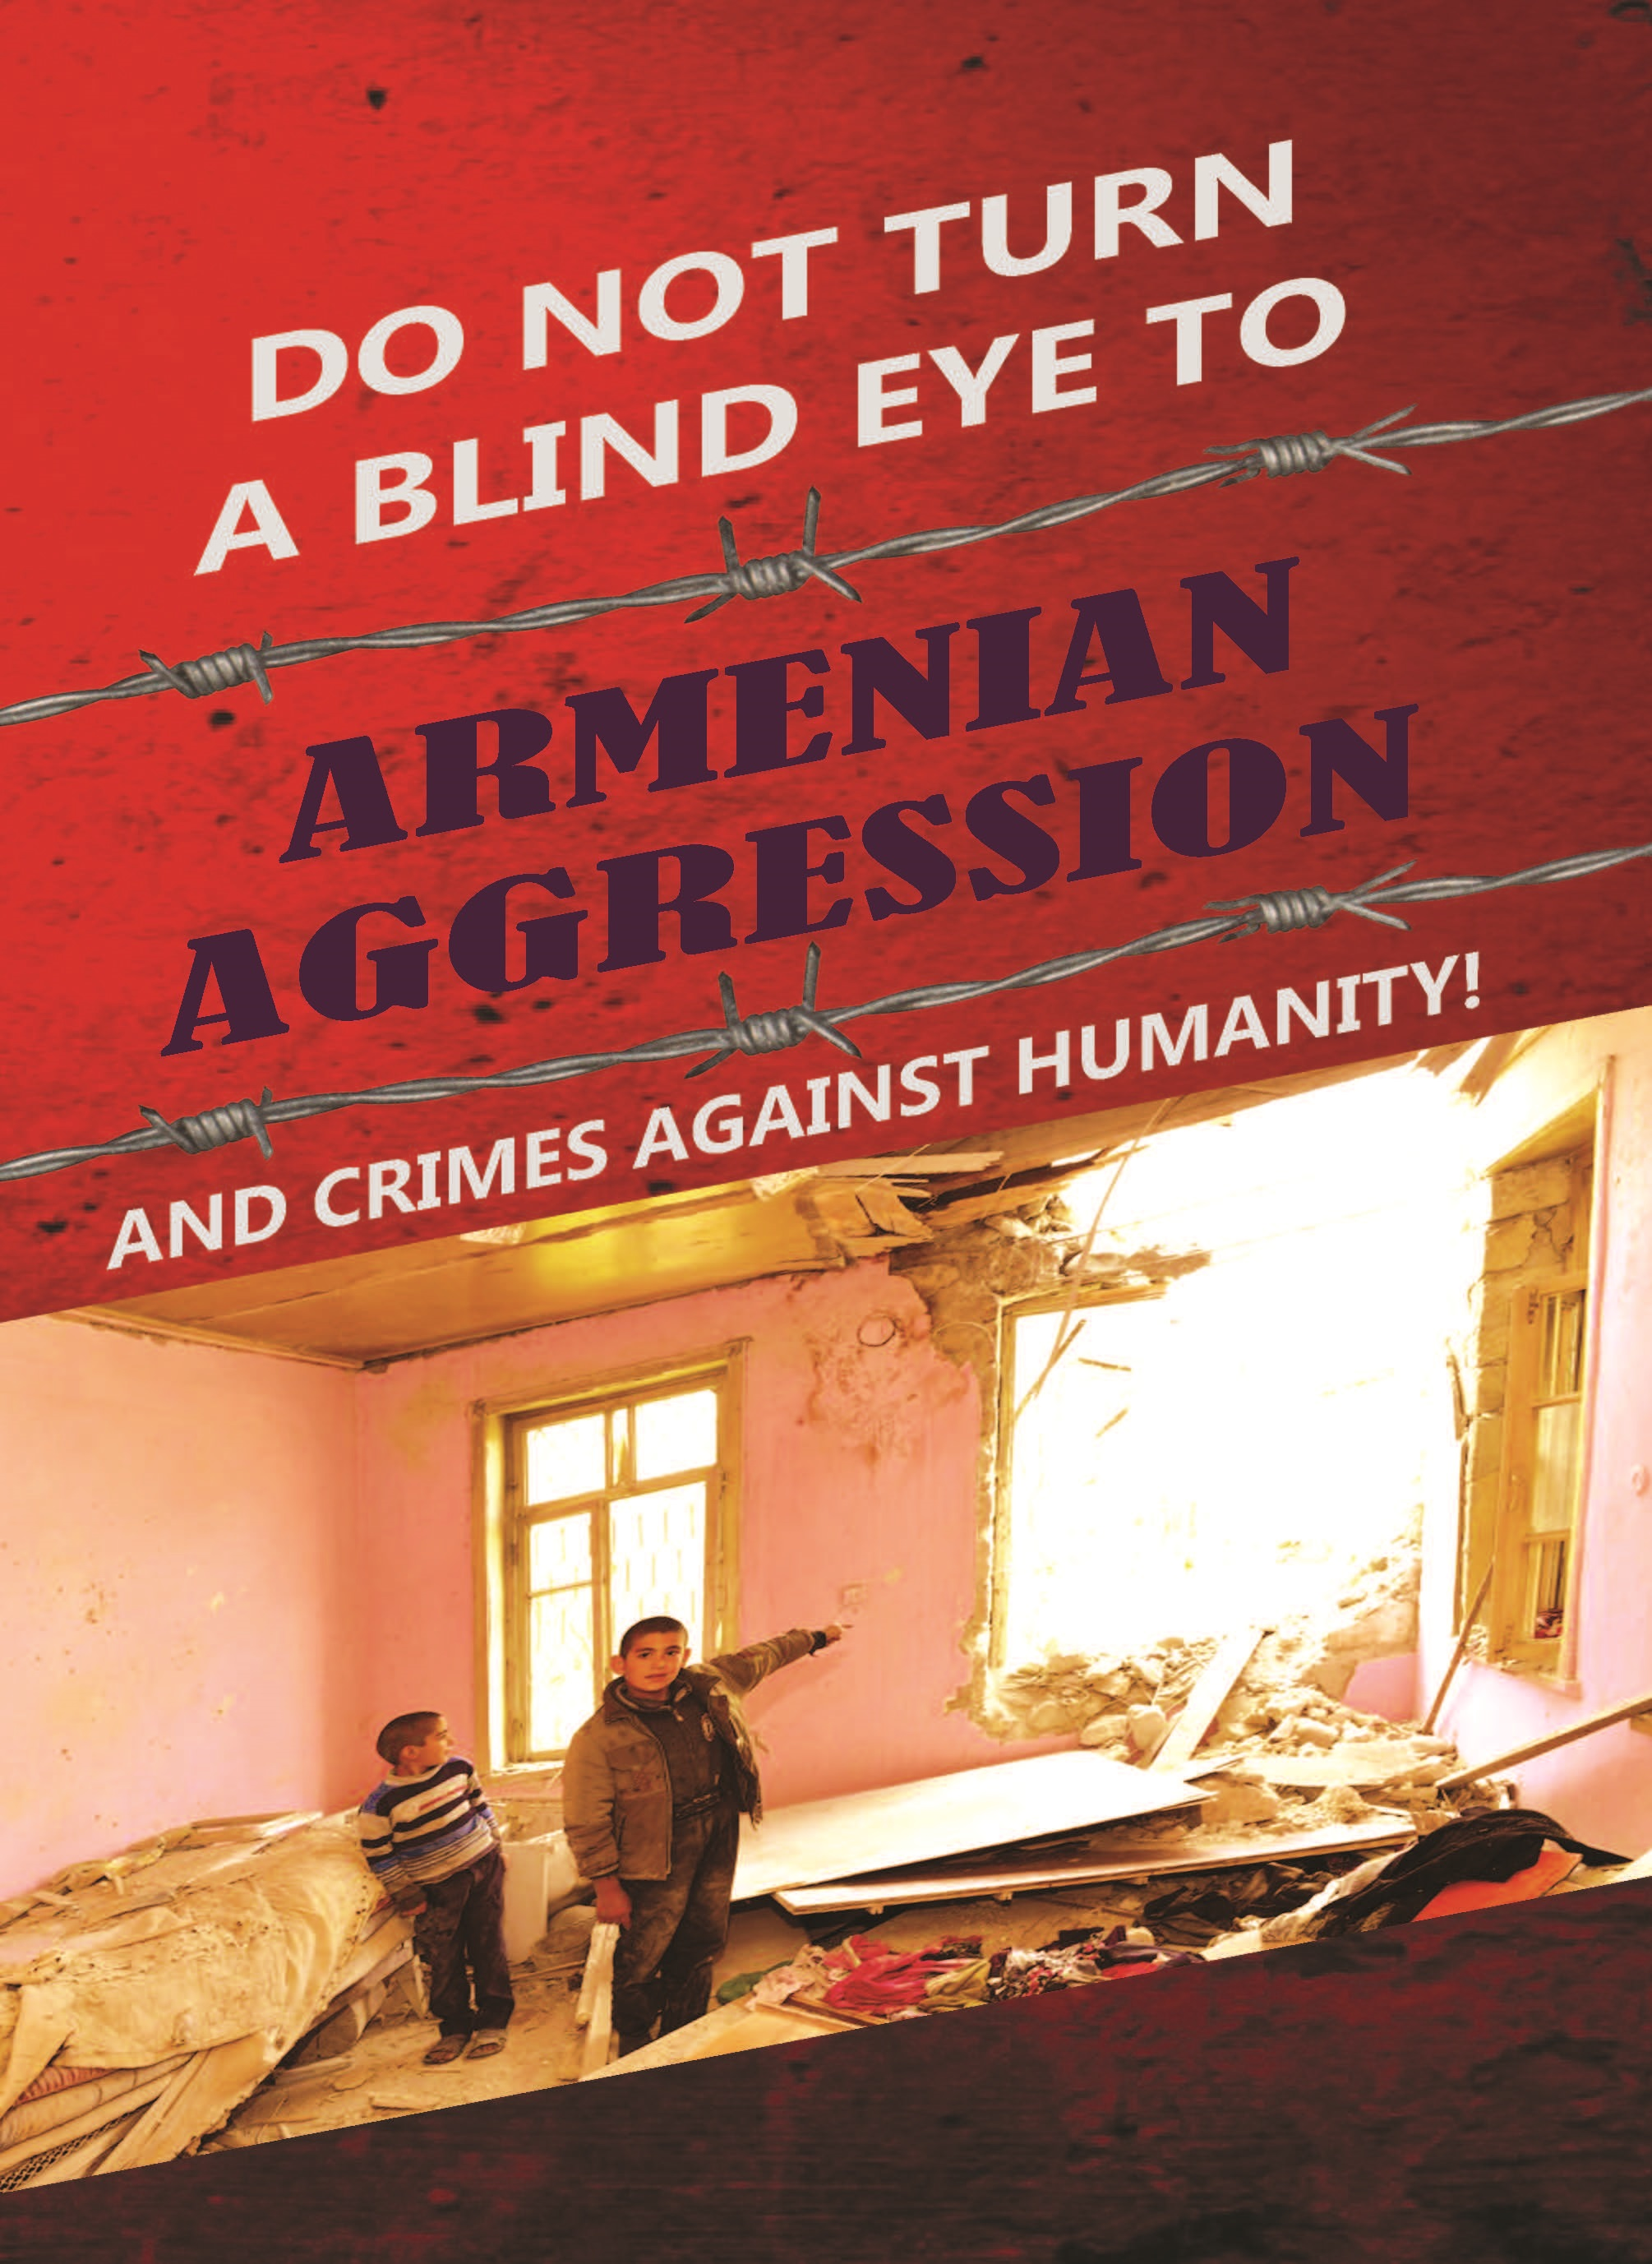 Do not turn a blind eye to Armenian aggression and crimes against humanity